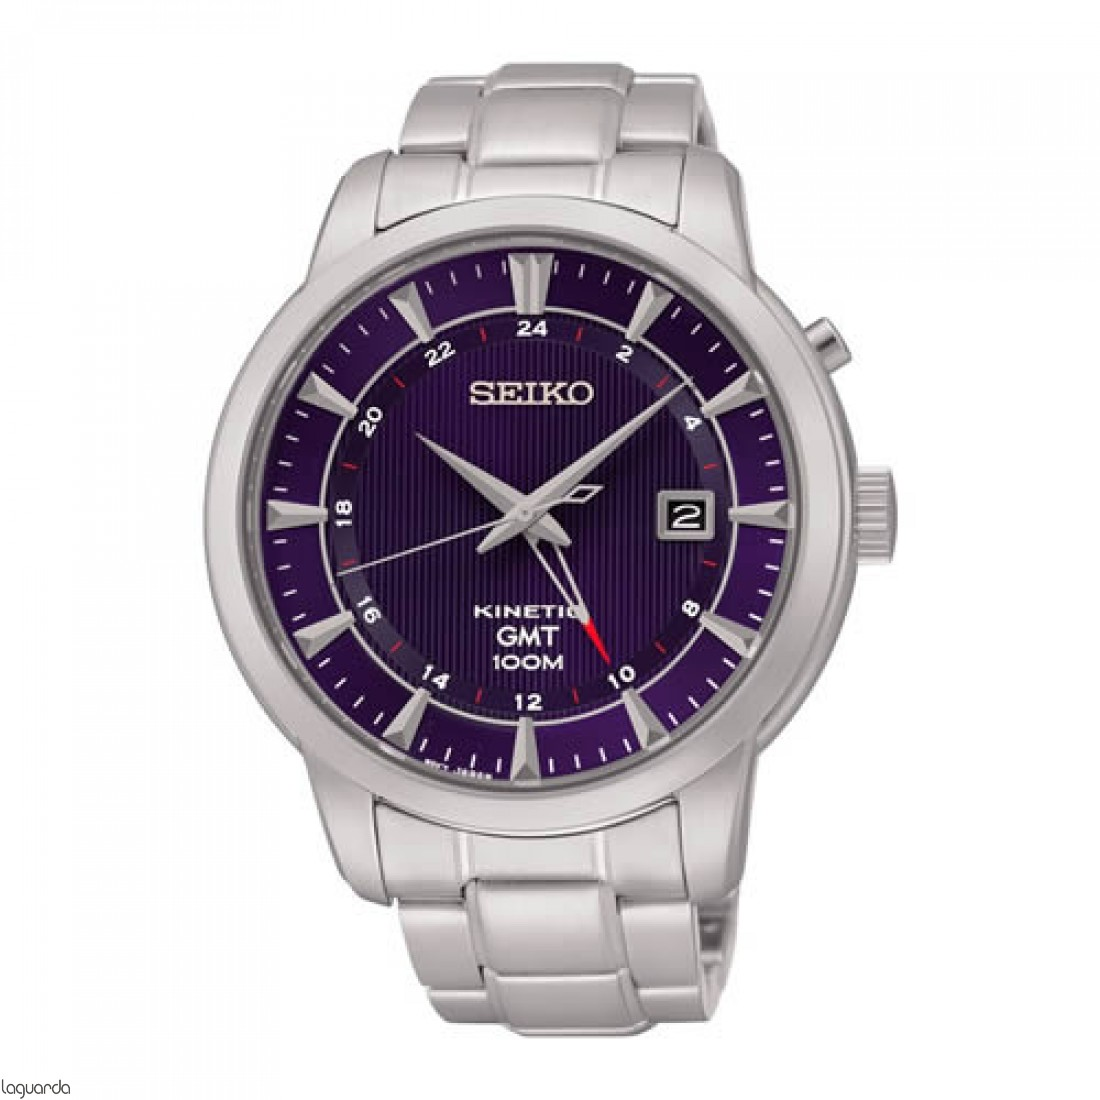 Reloj Seiko Neo Sports SUN031P1 Kinetic GMT